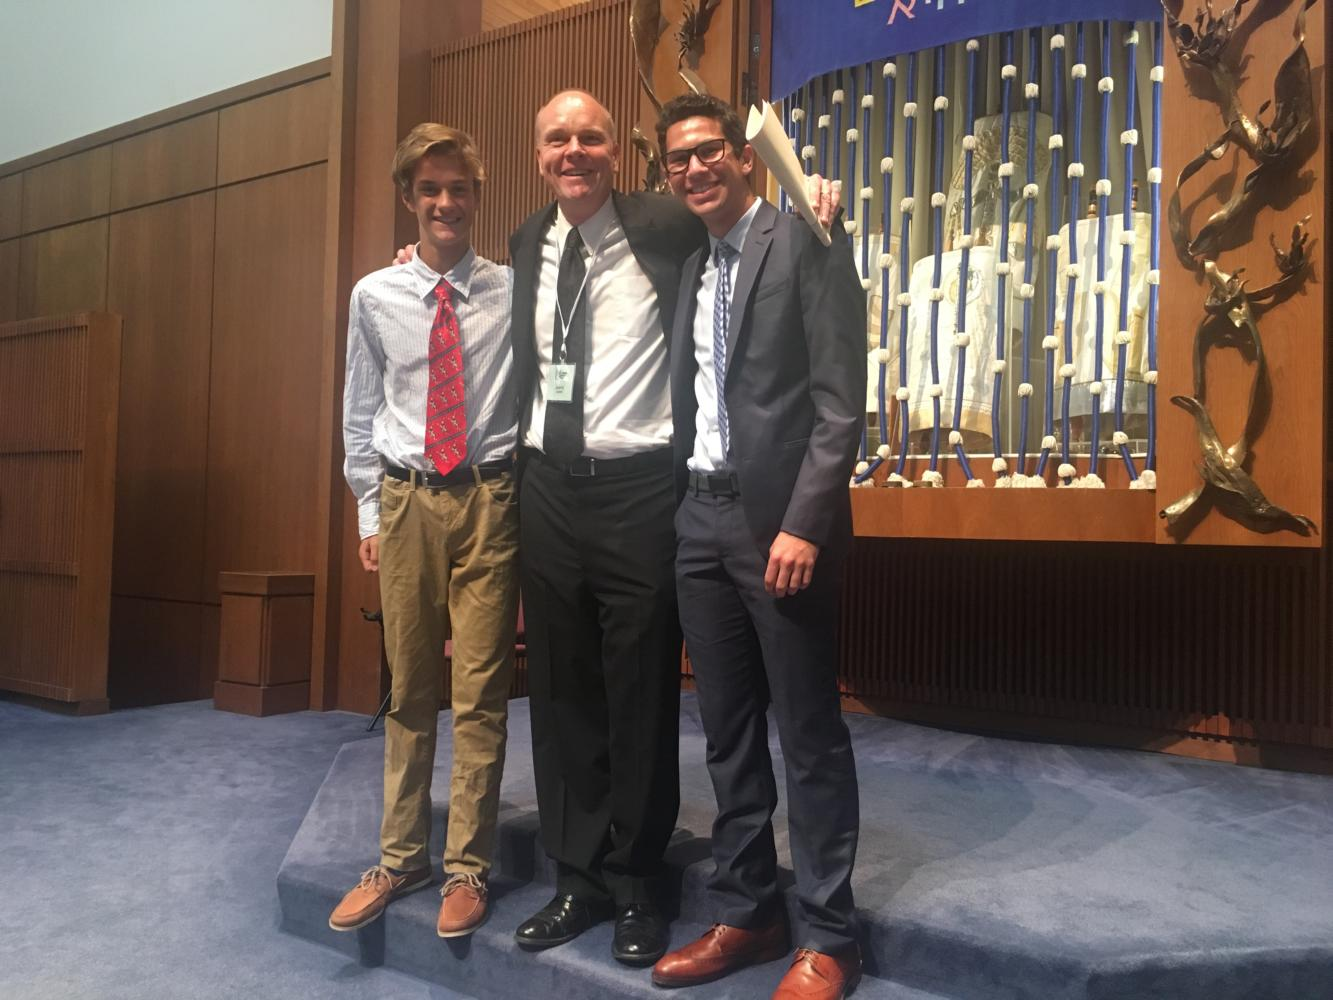 Freshman Joe Rosenberg, Principal Jeremy Mitchell and junior Zach Poscover attend the 9 a.m. Rosh Hashanah service at United Hebrew on Sept. 21.